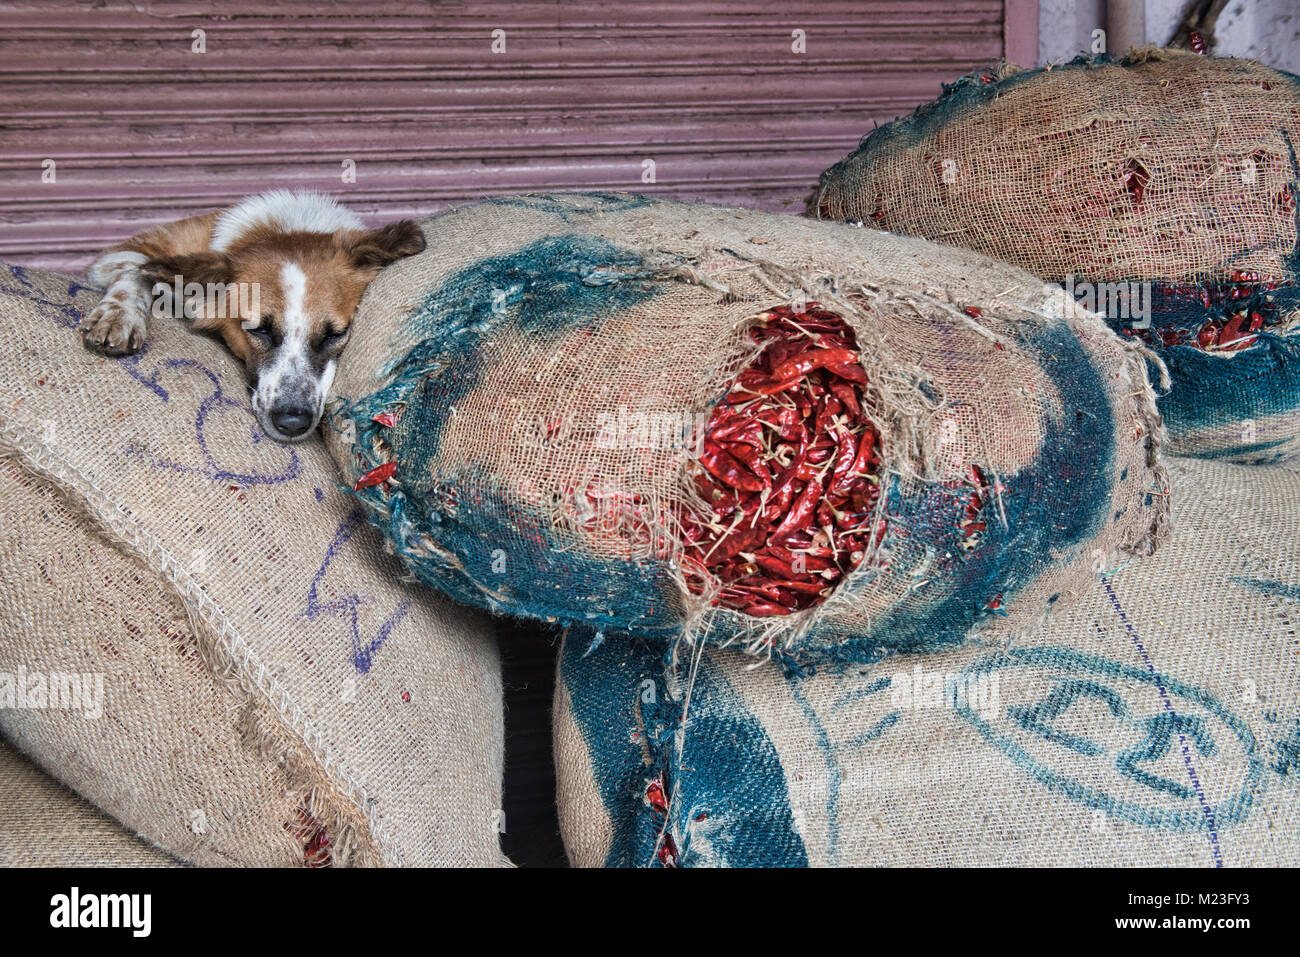 Let sleeping dogs lie, dog on top of chiles in the Khari Baoli Spice Market, Old Delhi, India - Stock Image